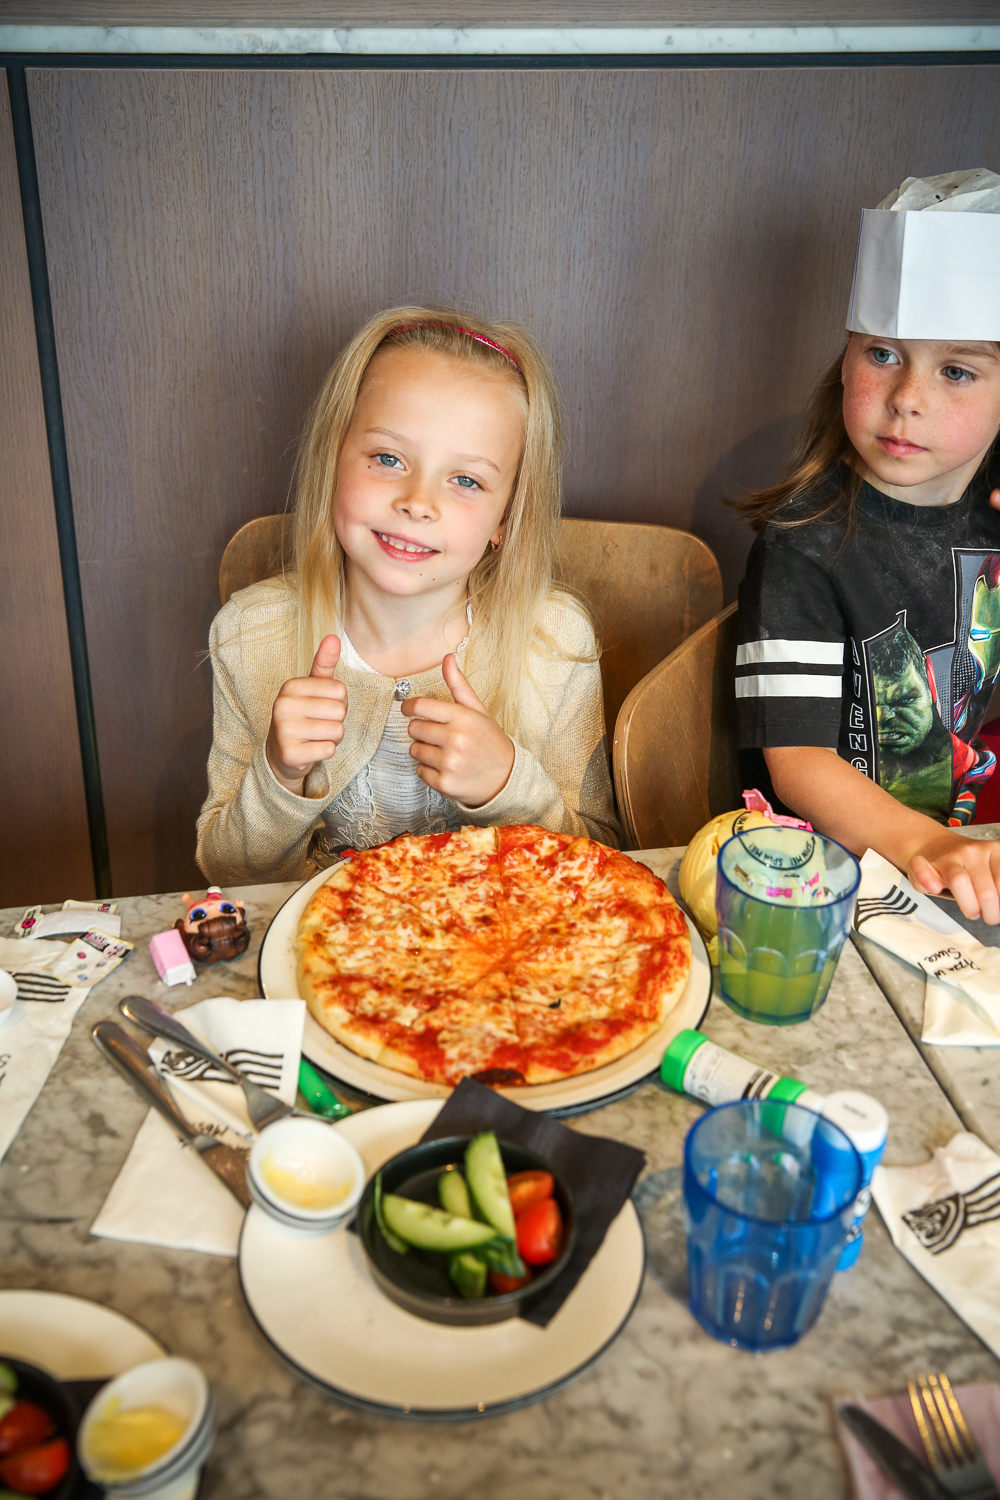 Pizza-Express-Kids-indoor-Birthday-Party-family-photographer-South-Wales-Natalia-Smith-Photography-0012.jpg